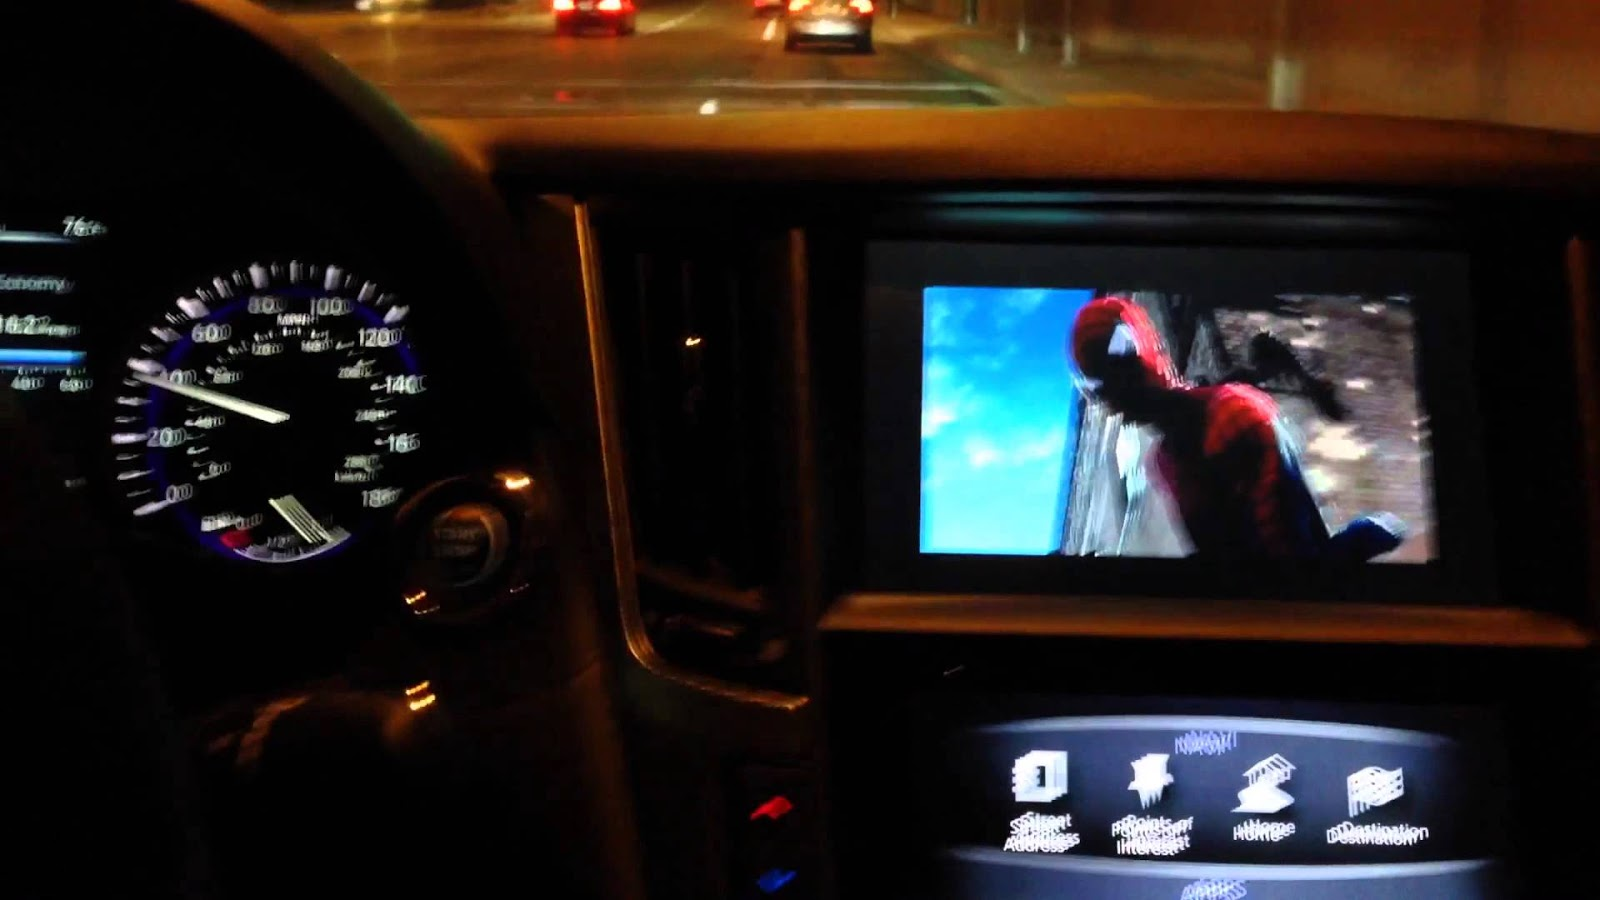 How To Make Any Car Dvd Player Work While Driving Install Installation A Stereo Now Most Headunits That Have Video Playback Feature Usually Dont Your At The Same Time From Factory Or Installed By